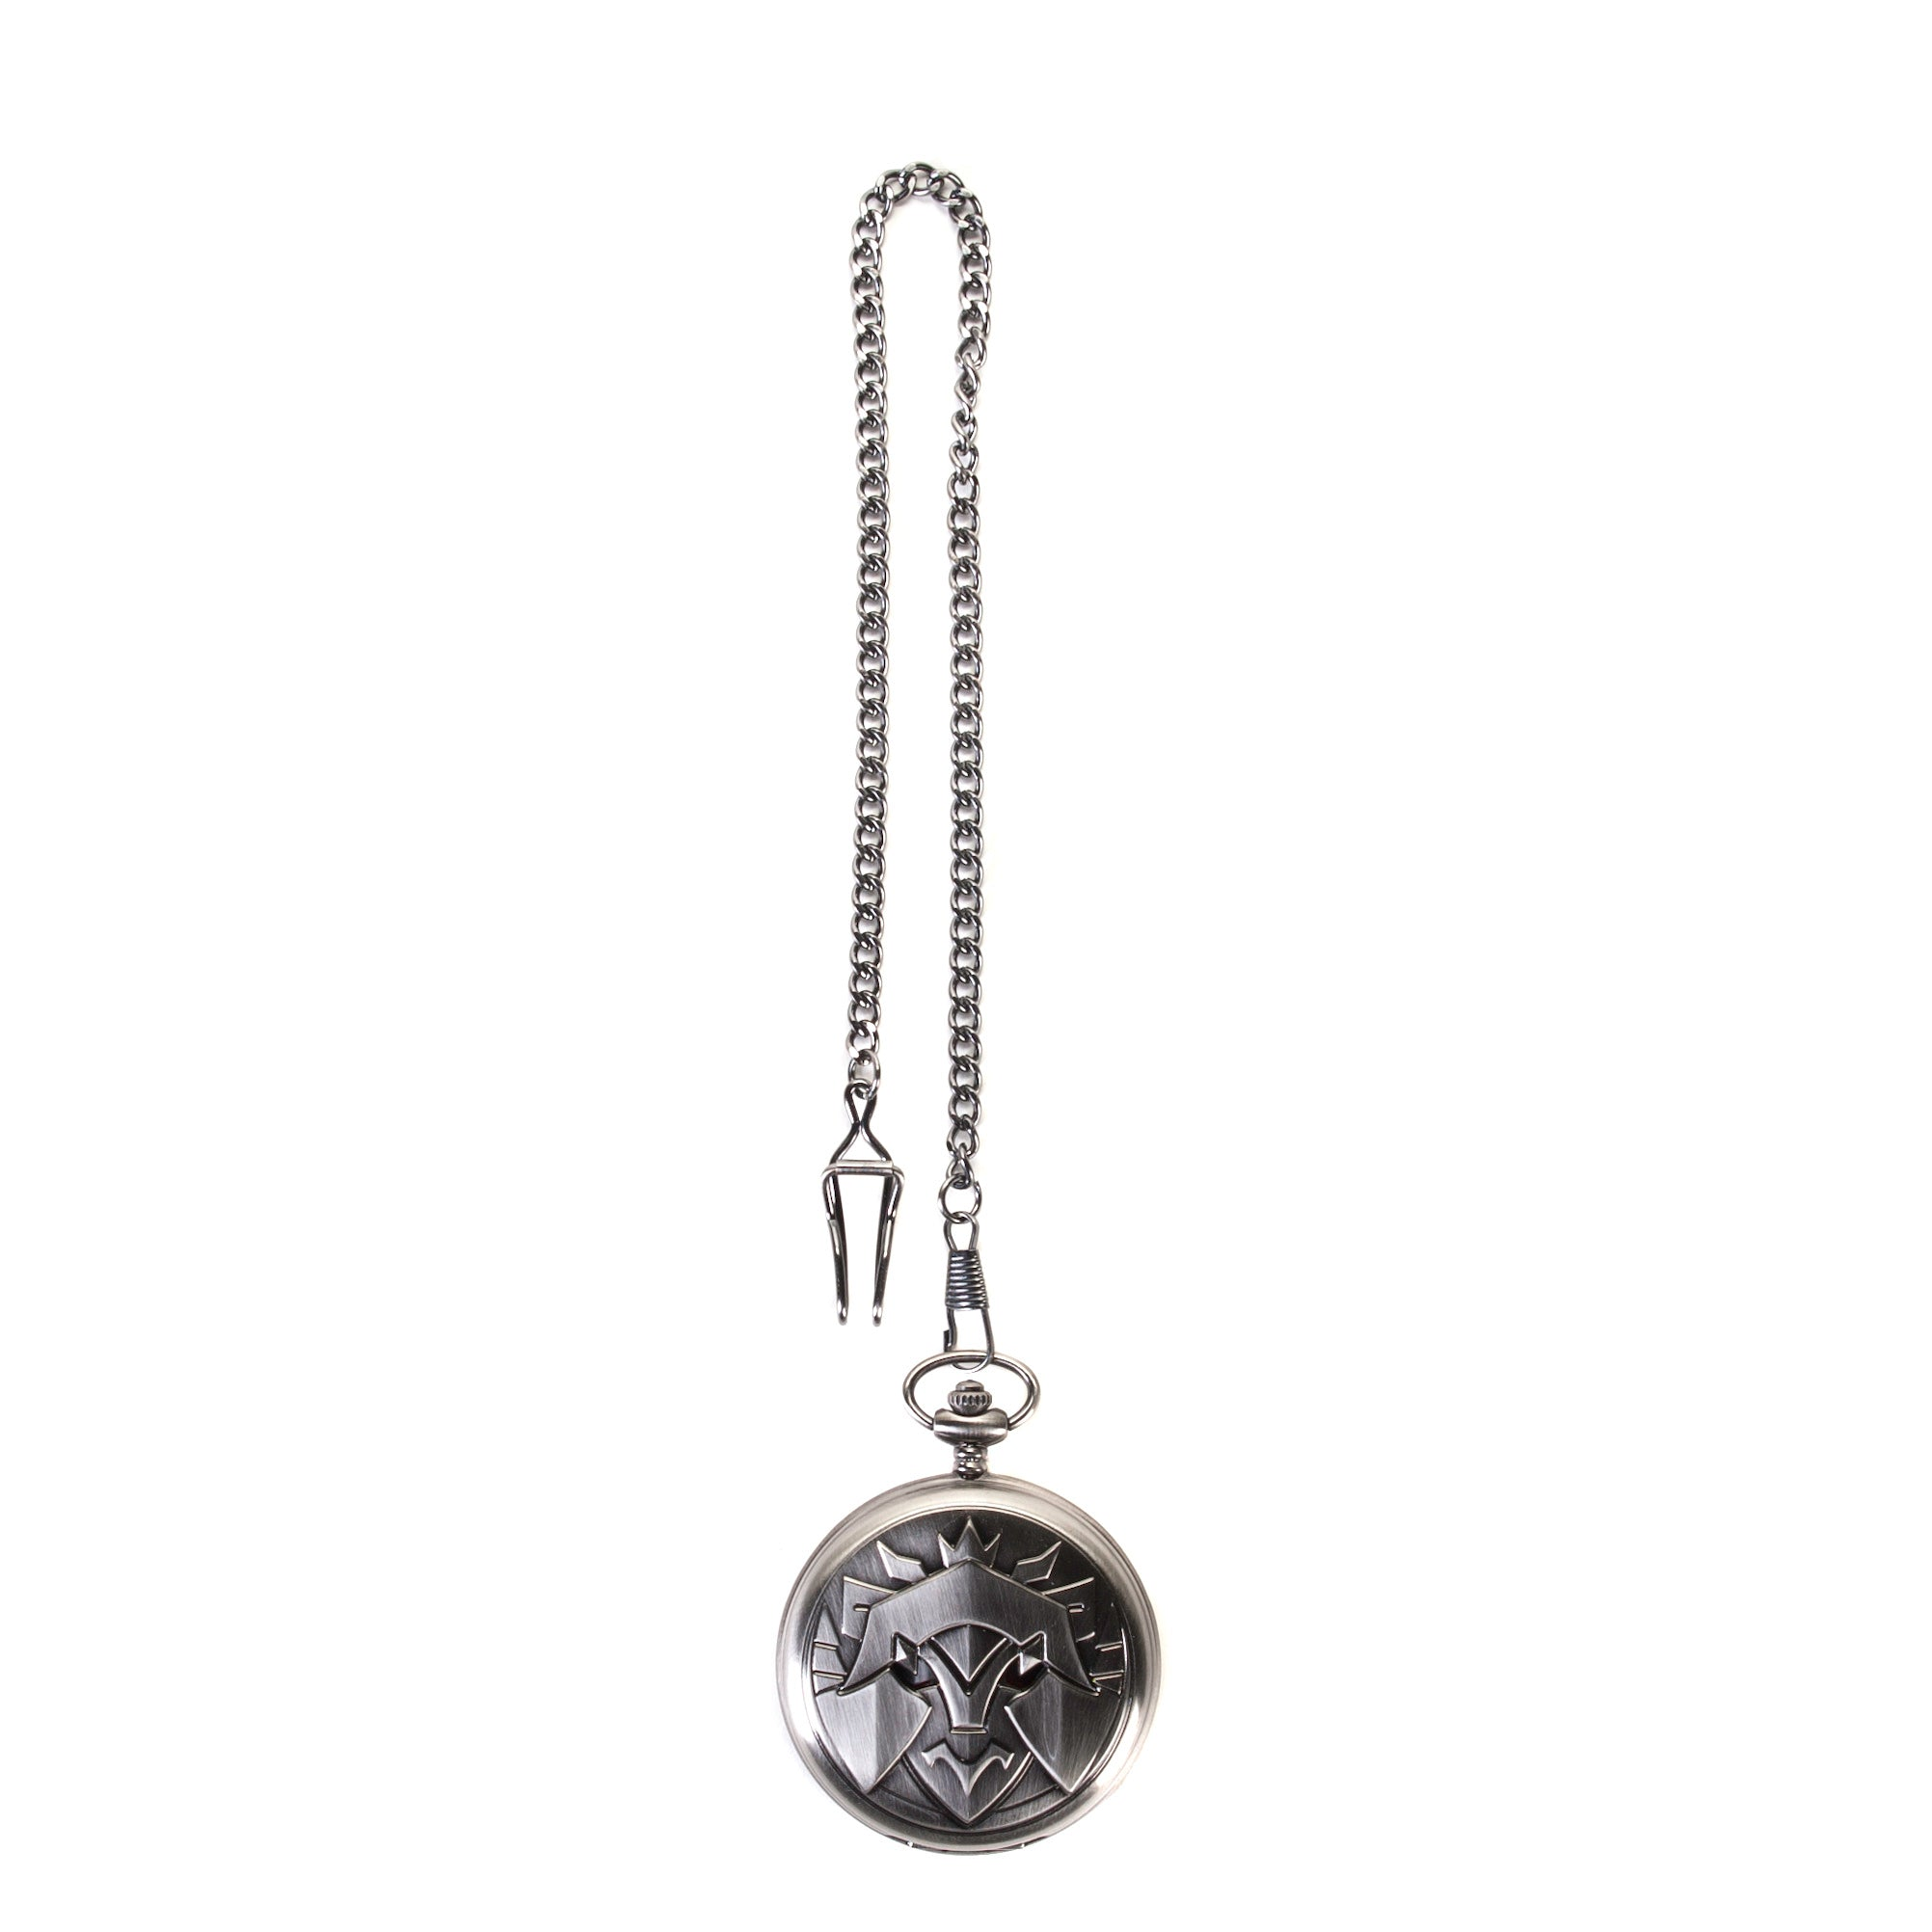 Fate/Apocrypha Mordred Saber Symbol Pocket Watch